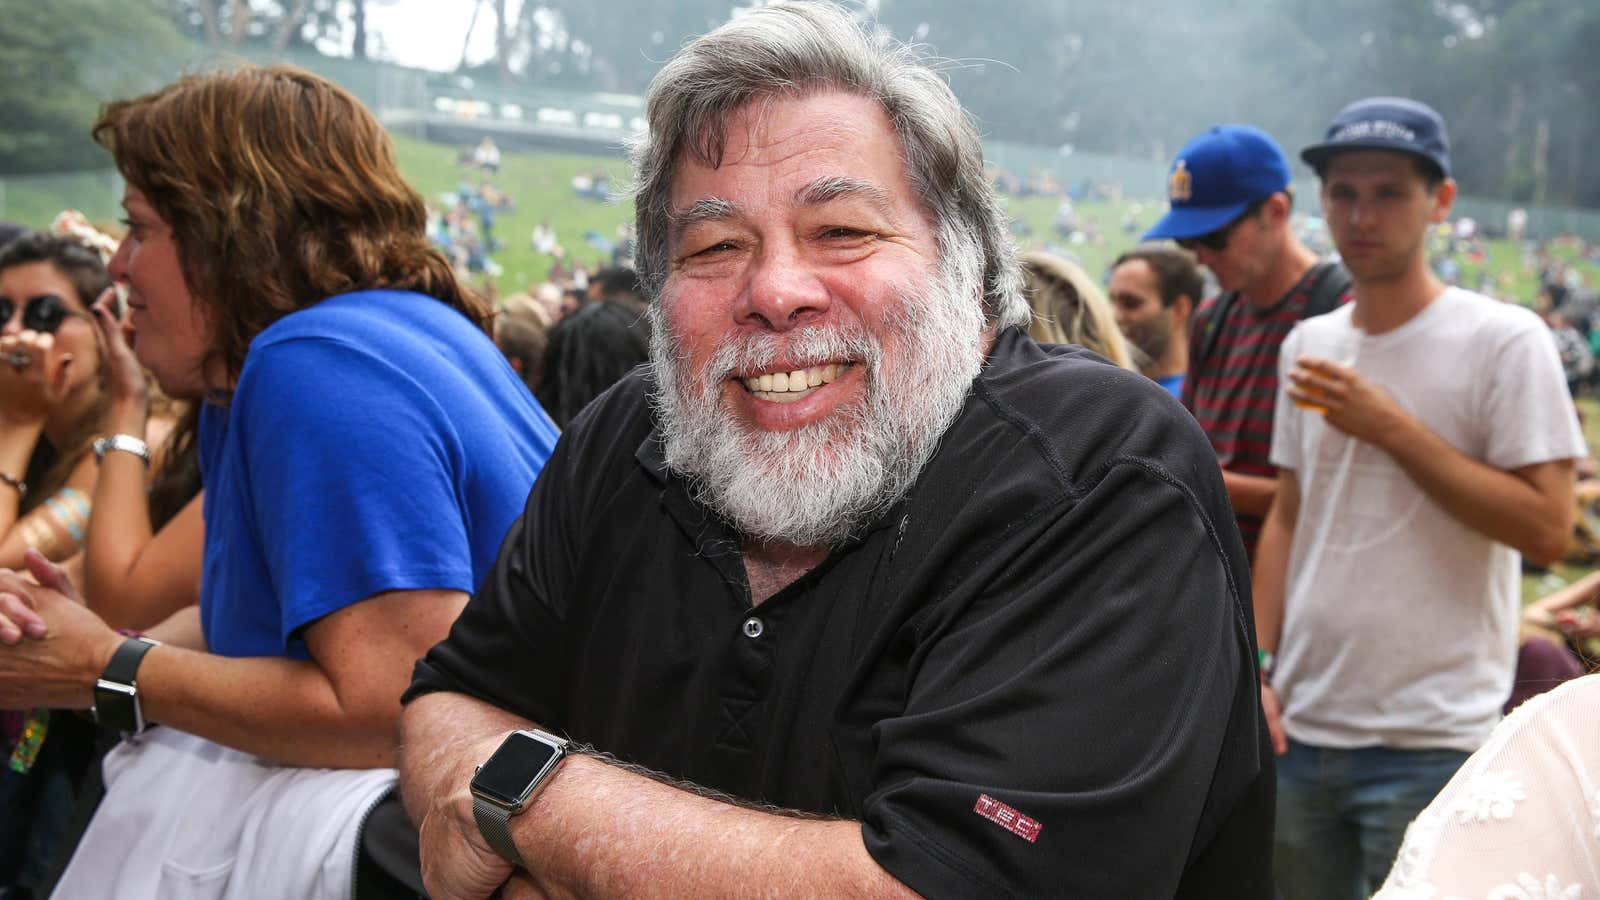 Steve Wozniak Appears to Be Launching a Space Garbage Company